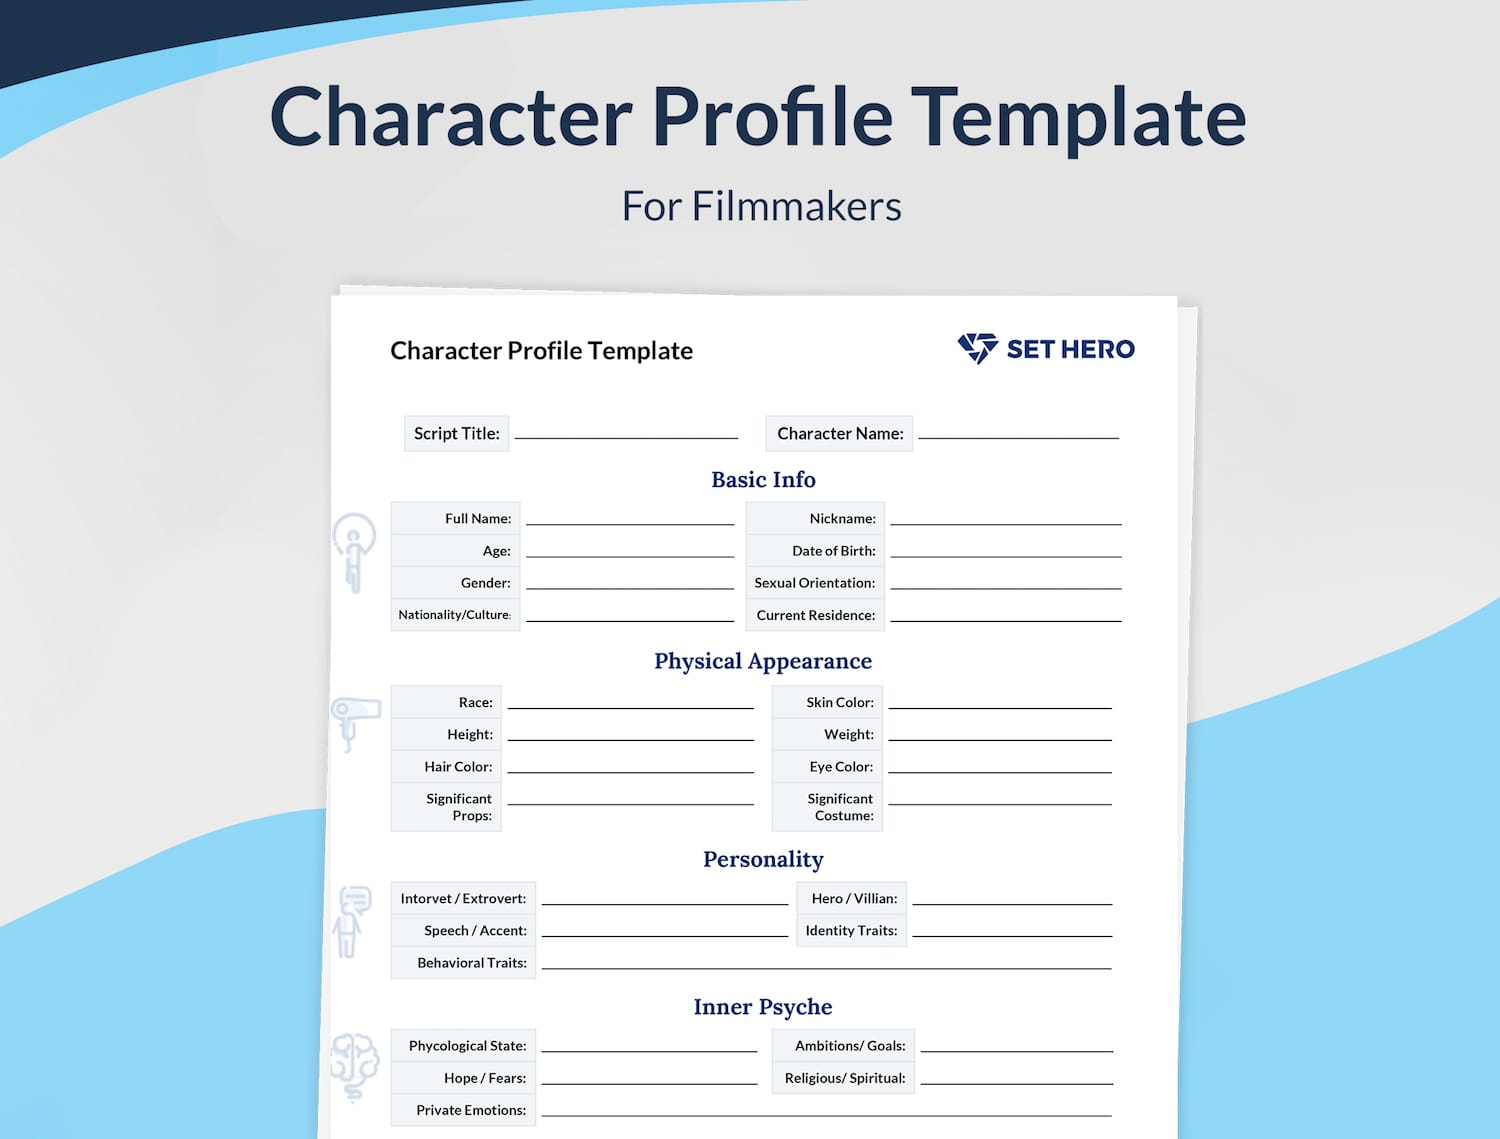 Screenplay character profile template for filmmakers